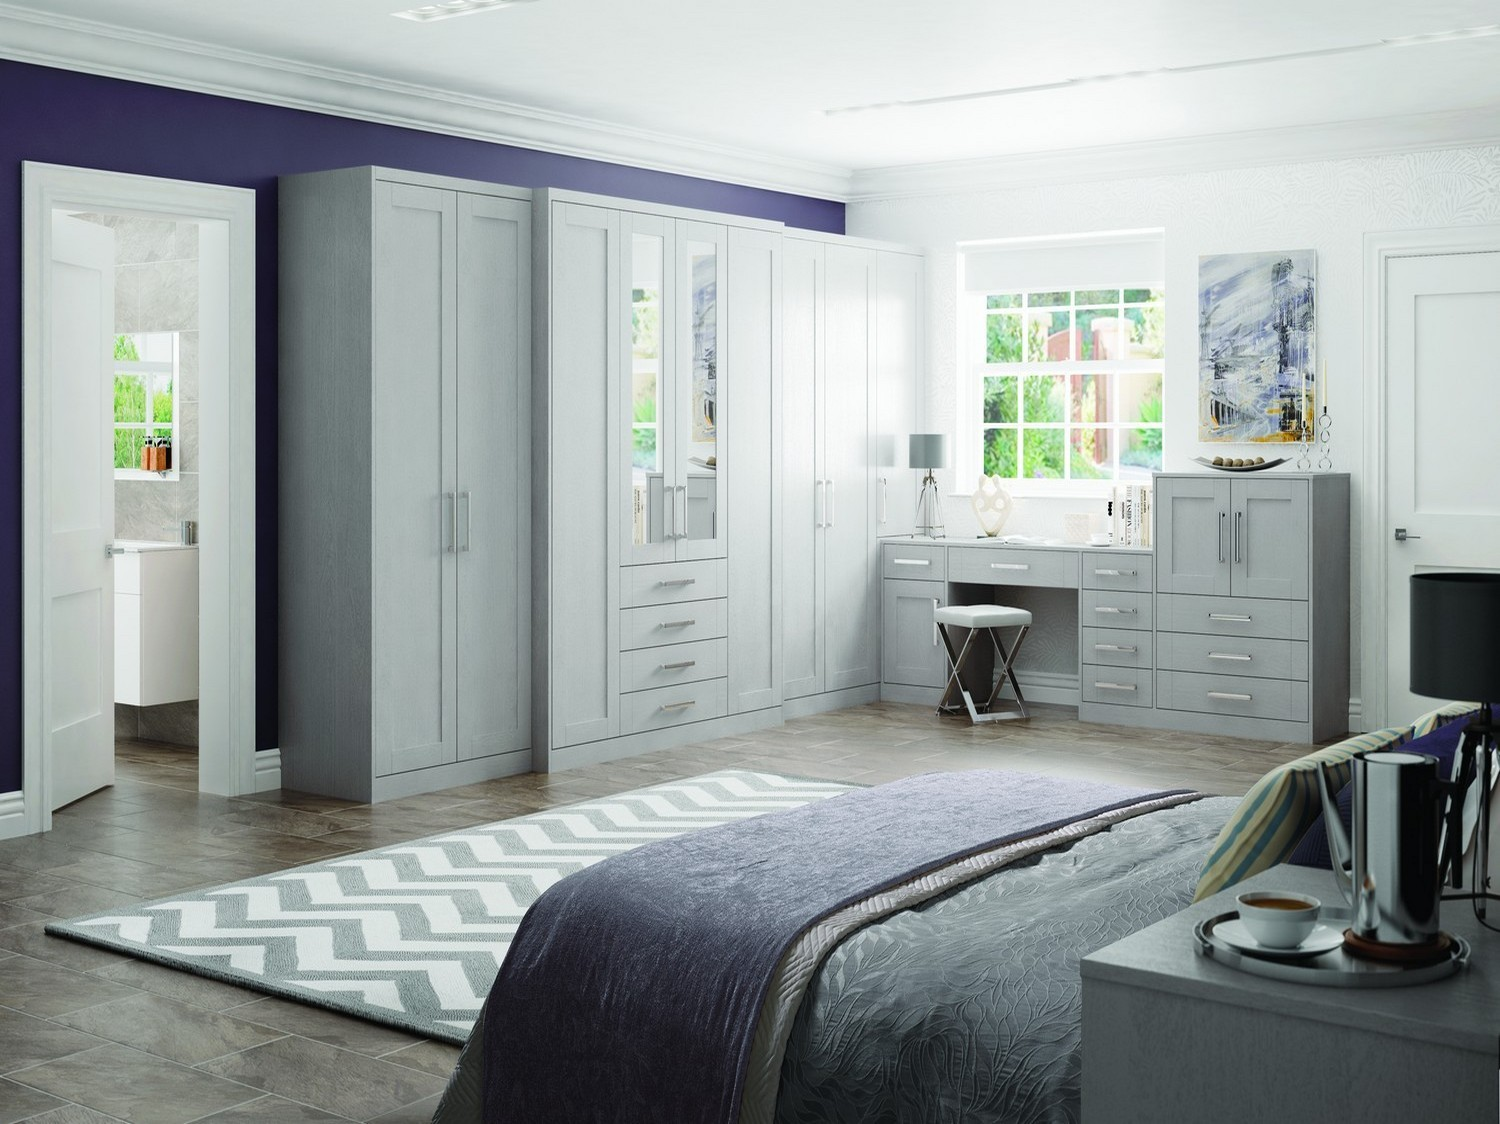 built in bedroom furniture designs. Larger Built In Bedroom Furniture Set Finished Light Grey With Feature Mirrors And Mirror Handles \ Designs